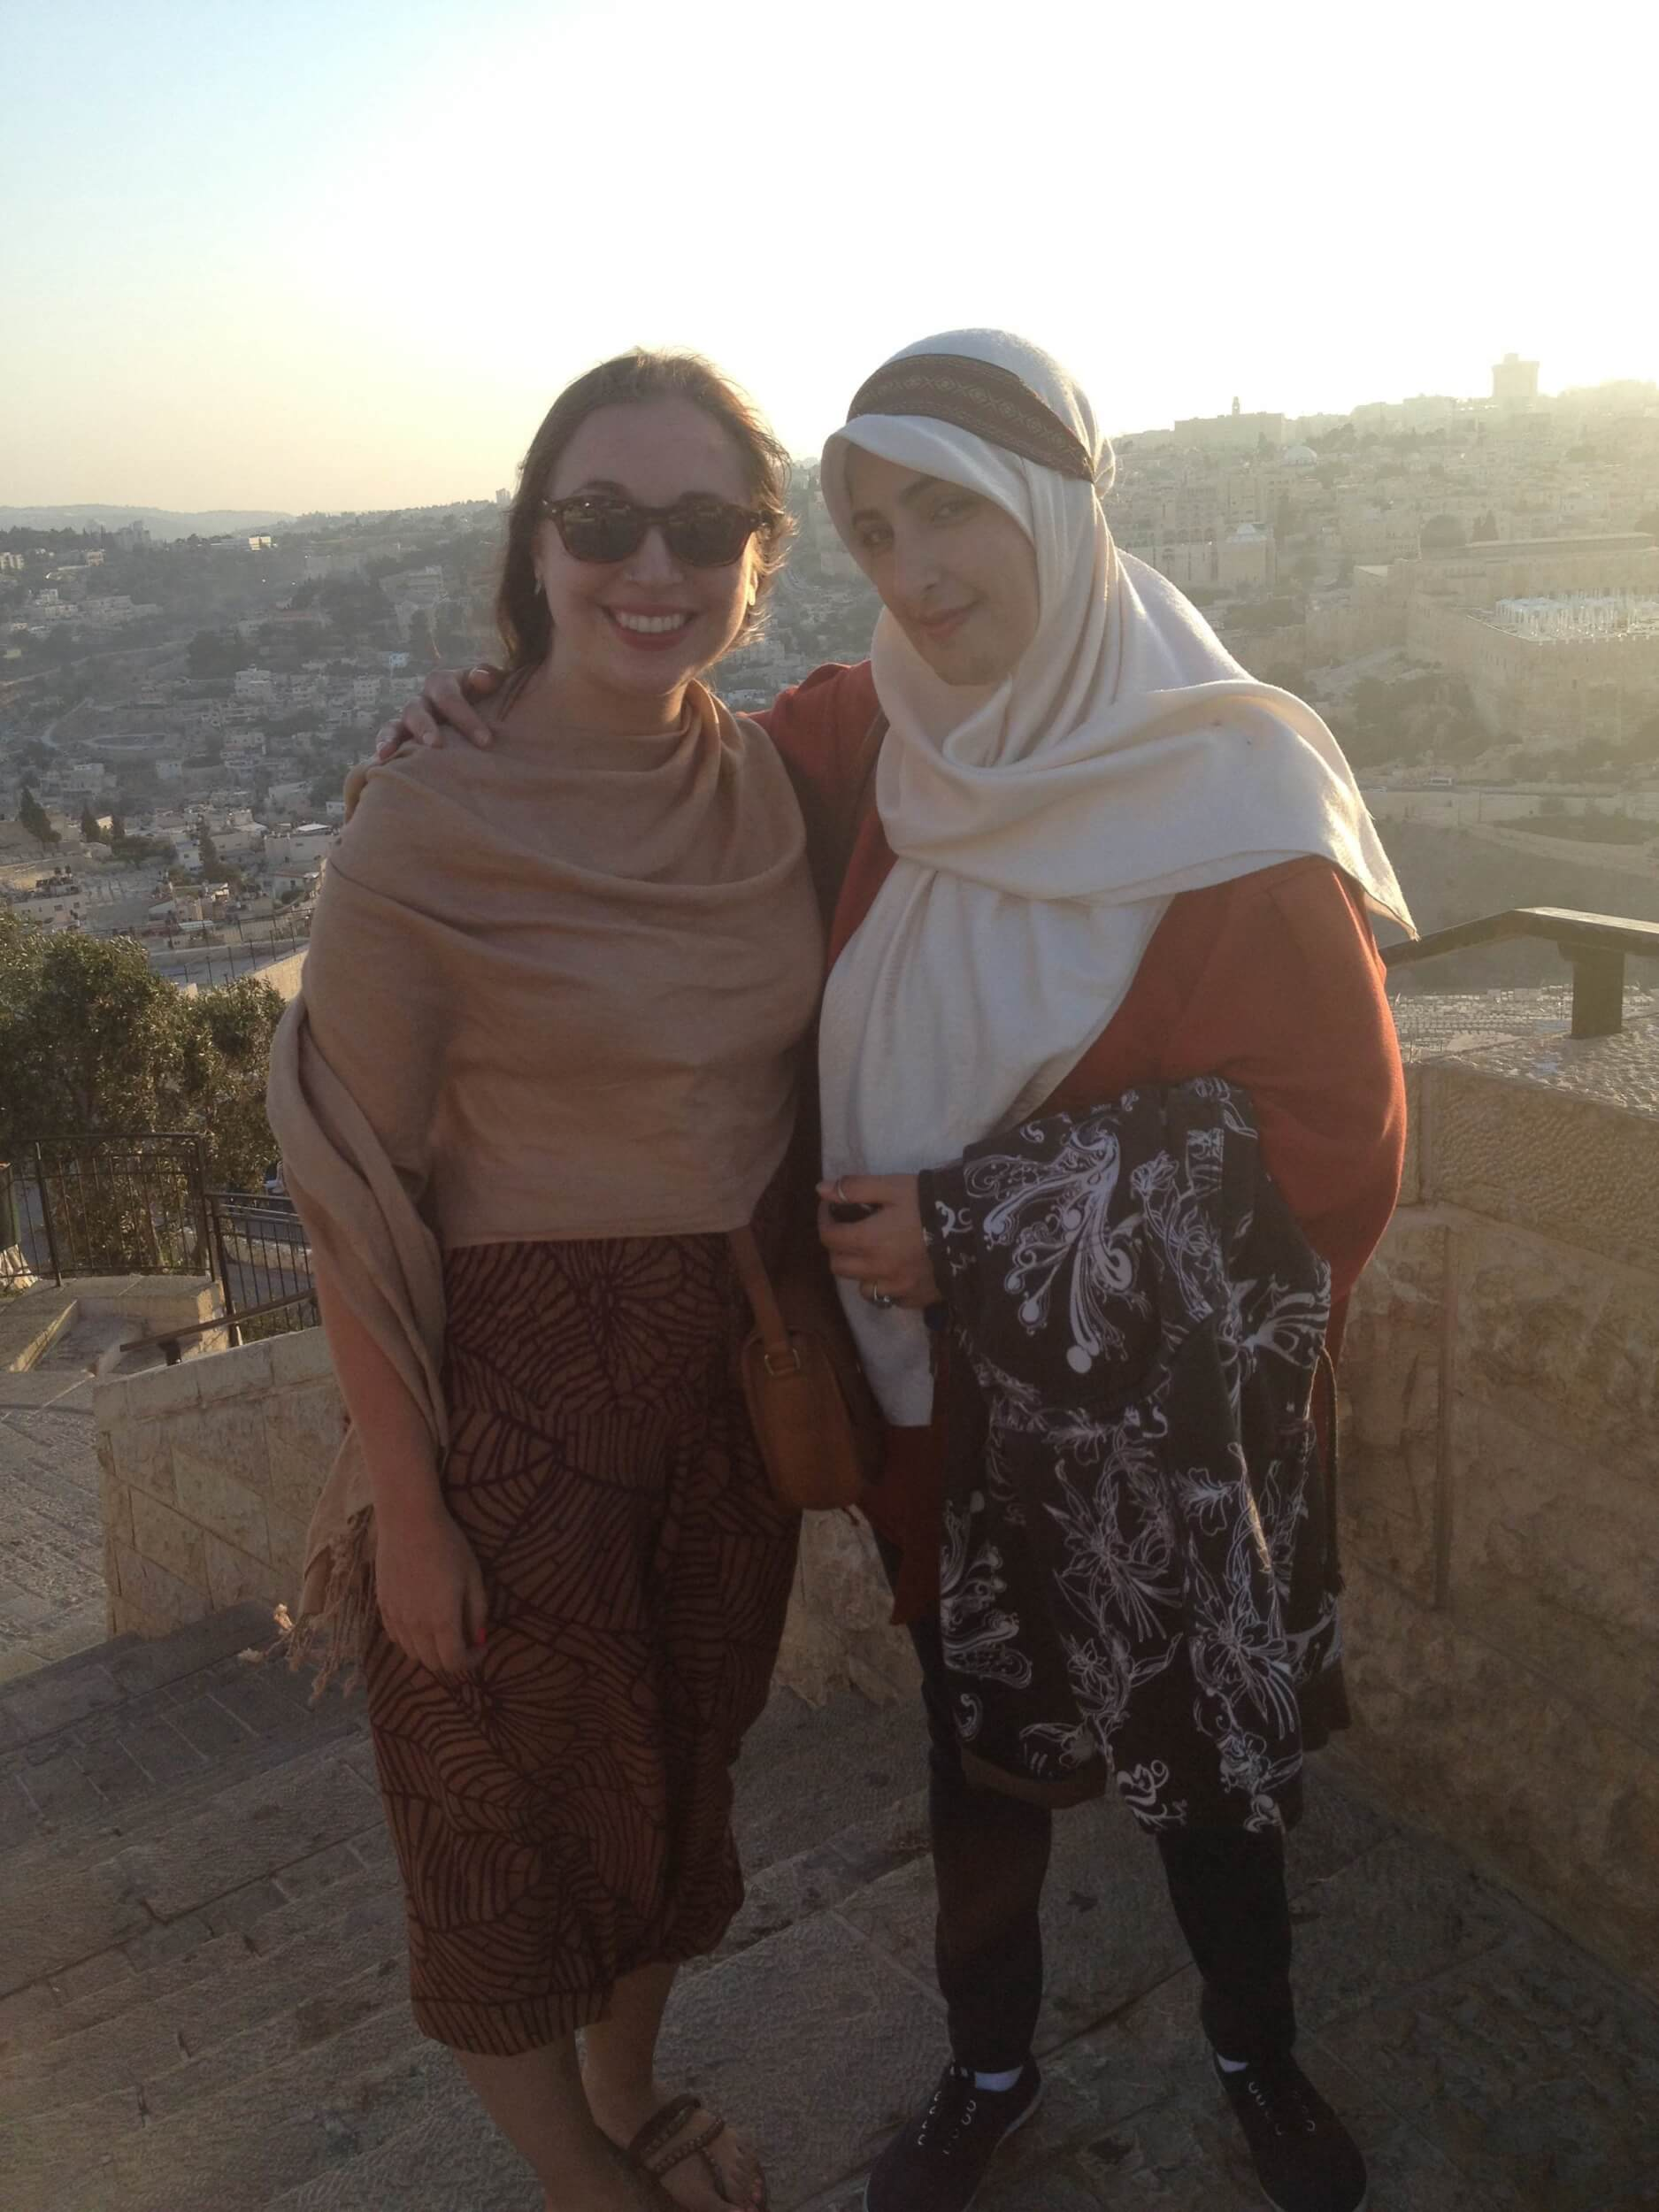 Fatima and Kayla Blau look over Jerusalem on top of the Mount of Olives.  When Fatima was a child, her family used to celebrate weddings and birthdays at the hotel on top of Mount of Olives, and the area was primarily a Palestinian settlement. The hotel is now under Israeli ownership, and the face of the mountain is now an Israeli Defense Forces (IDF) memorial site.